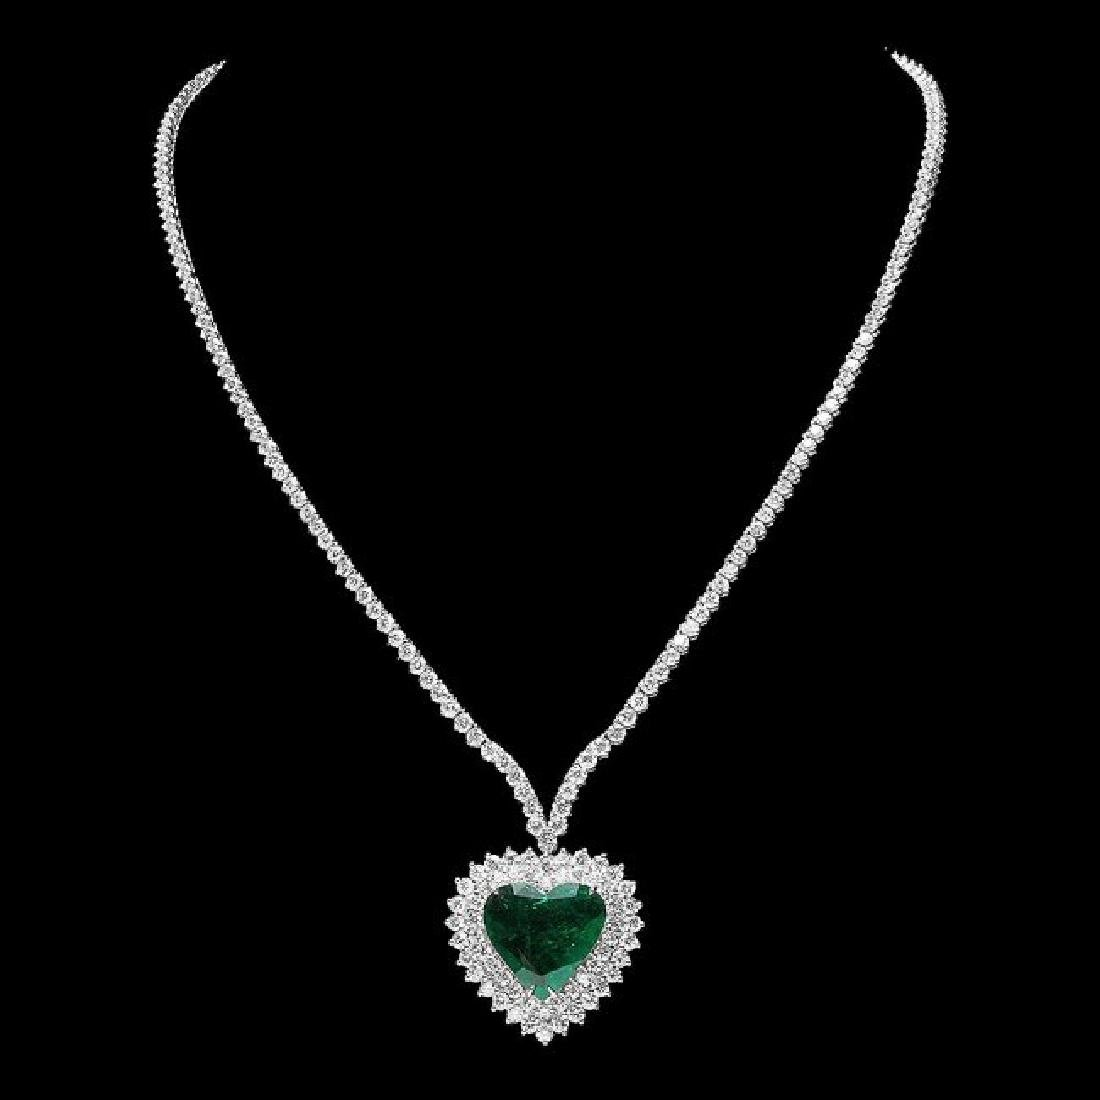 18k Gold 7.80Ct Emerald 11.50Ct Diamond Pendant